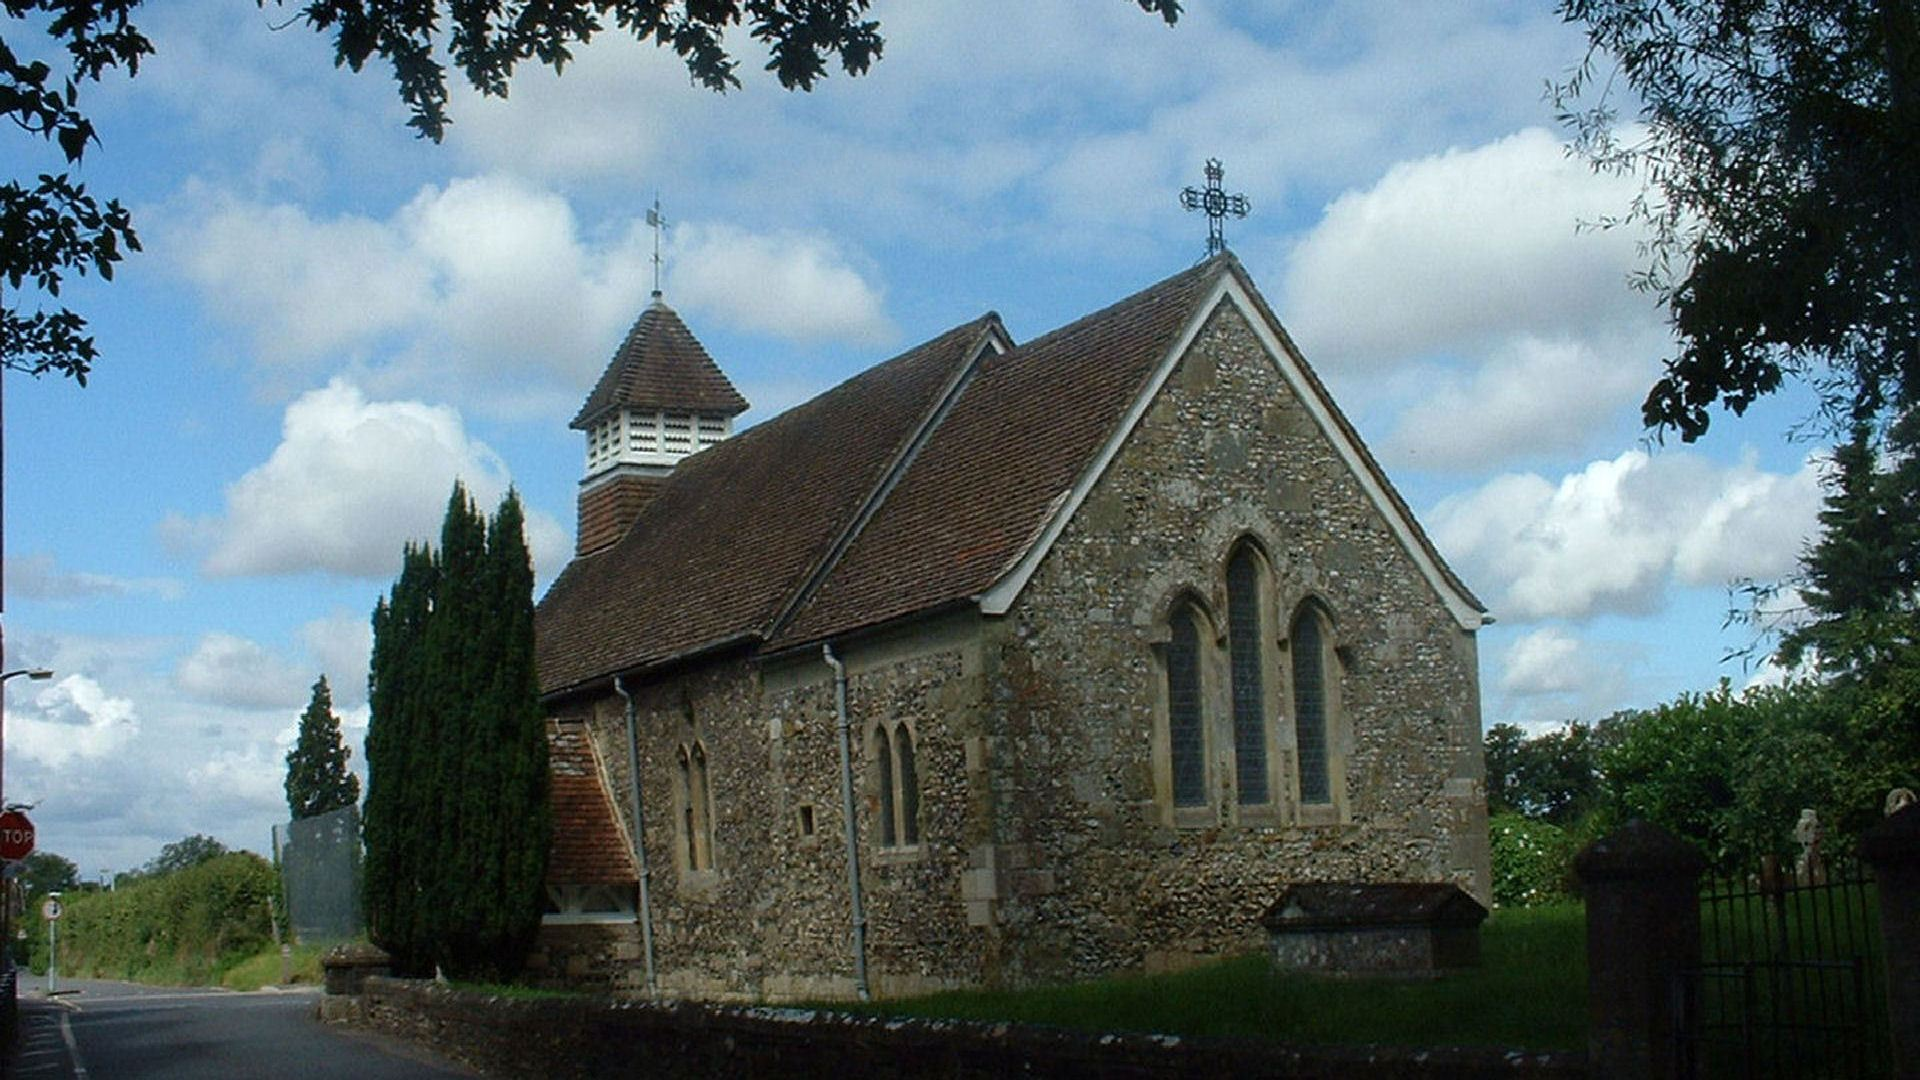 St. Andrew's Church, Bemerton